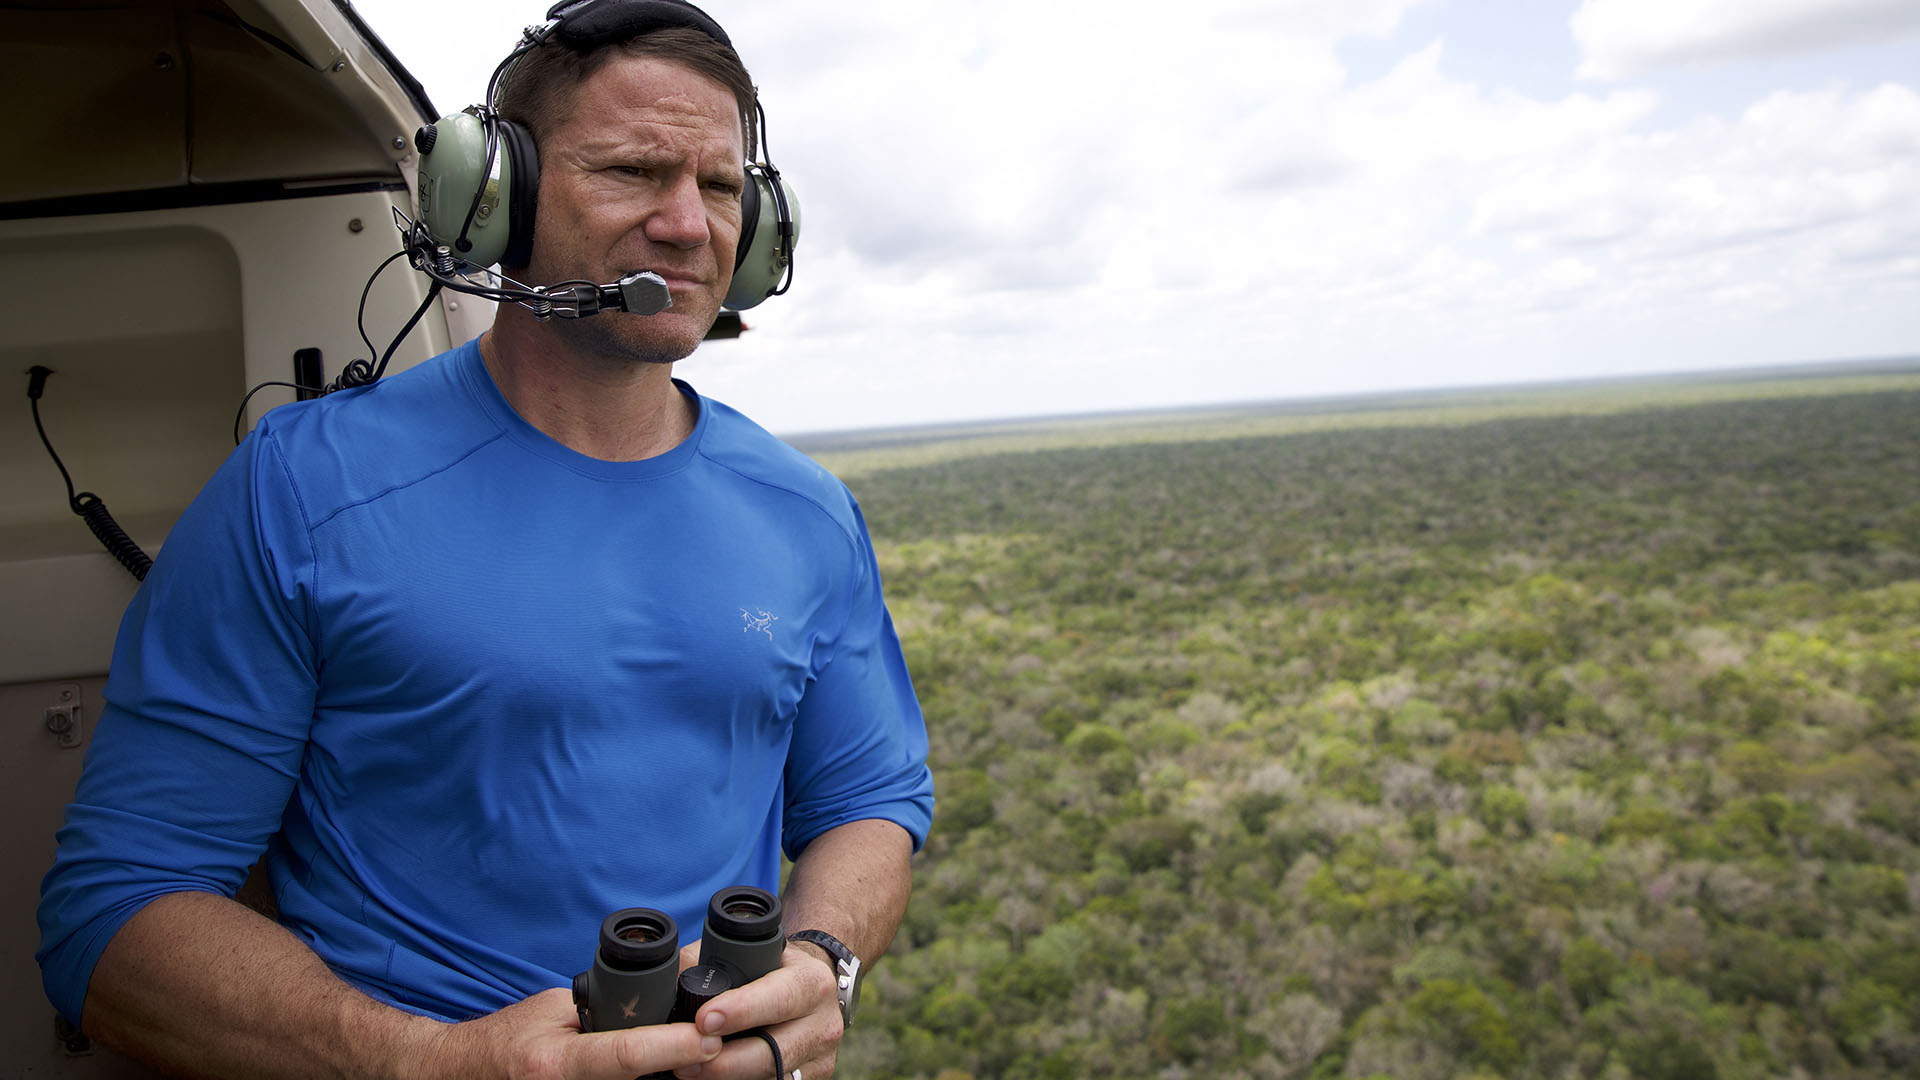 Modern-day adventurer Steve Backshall tackles undiscovered gems on 'Expedition'